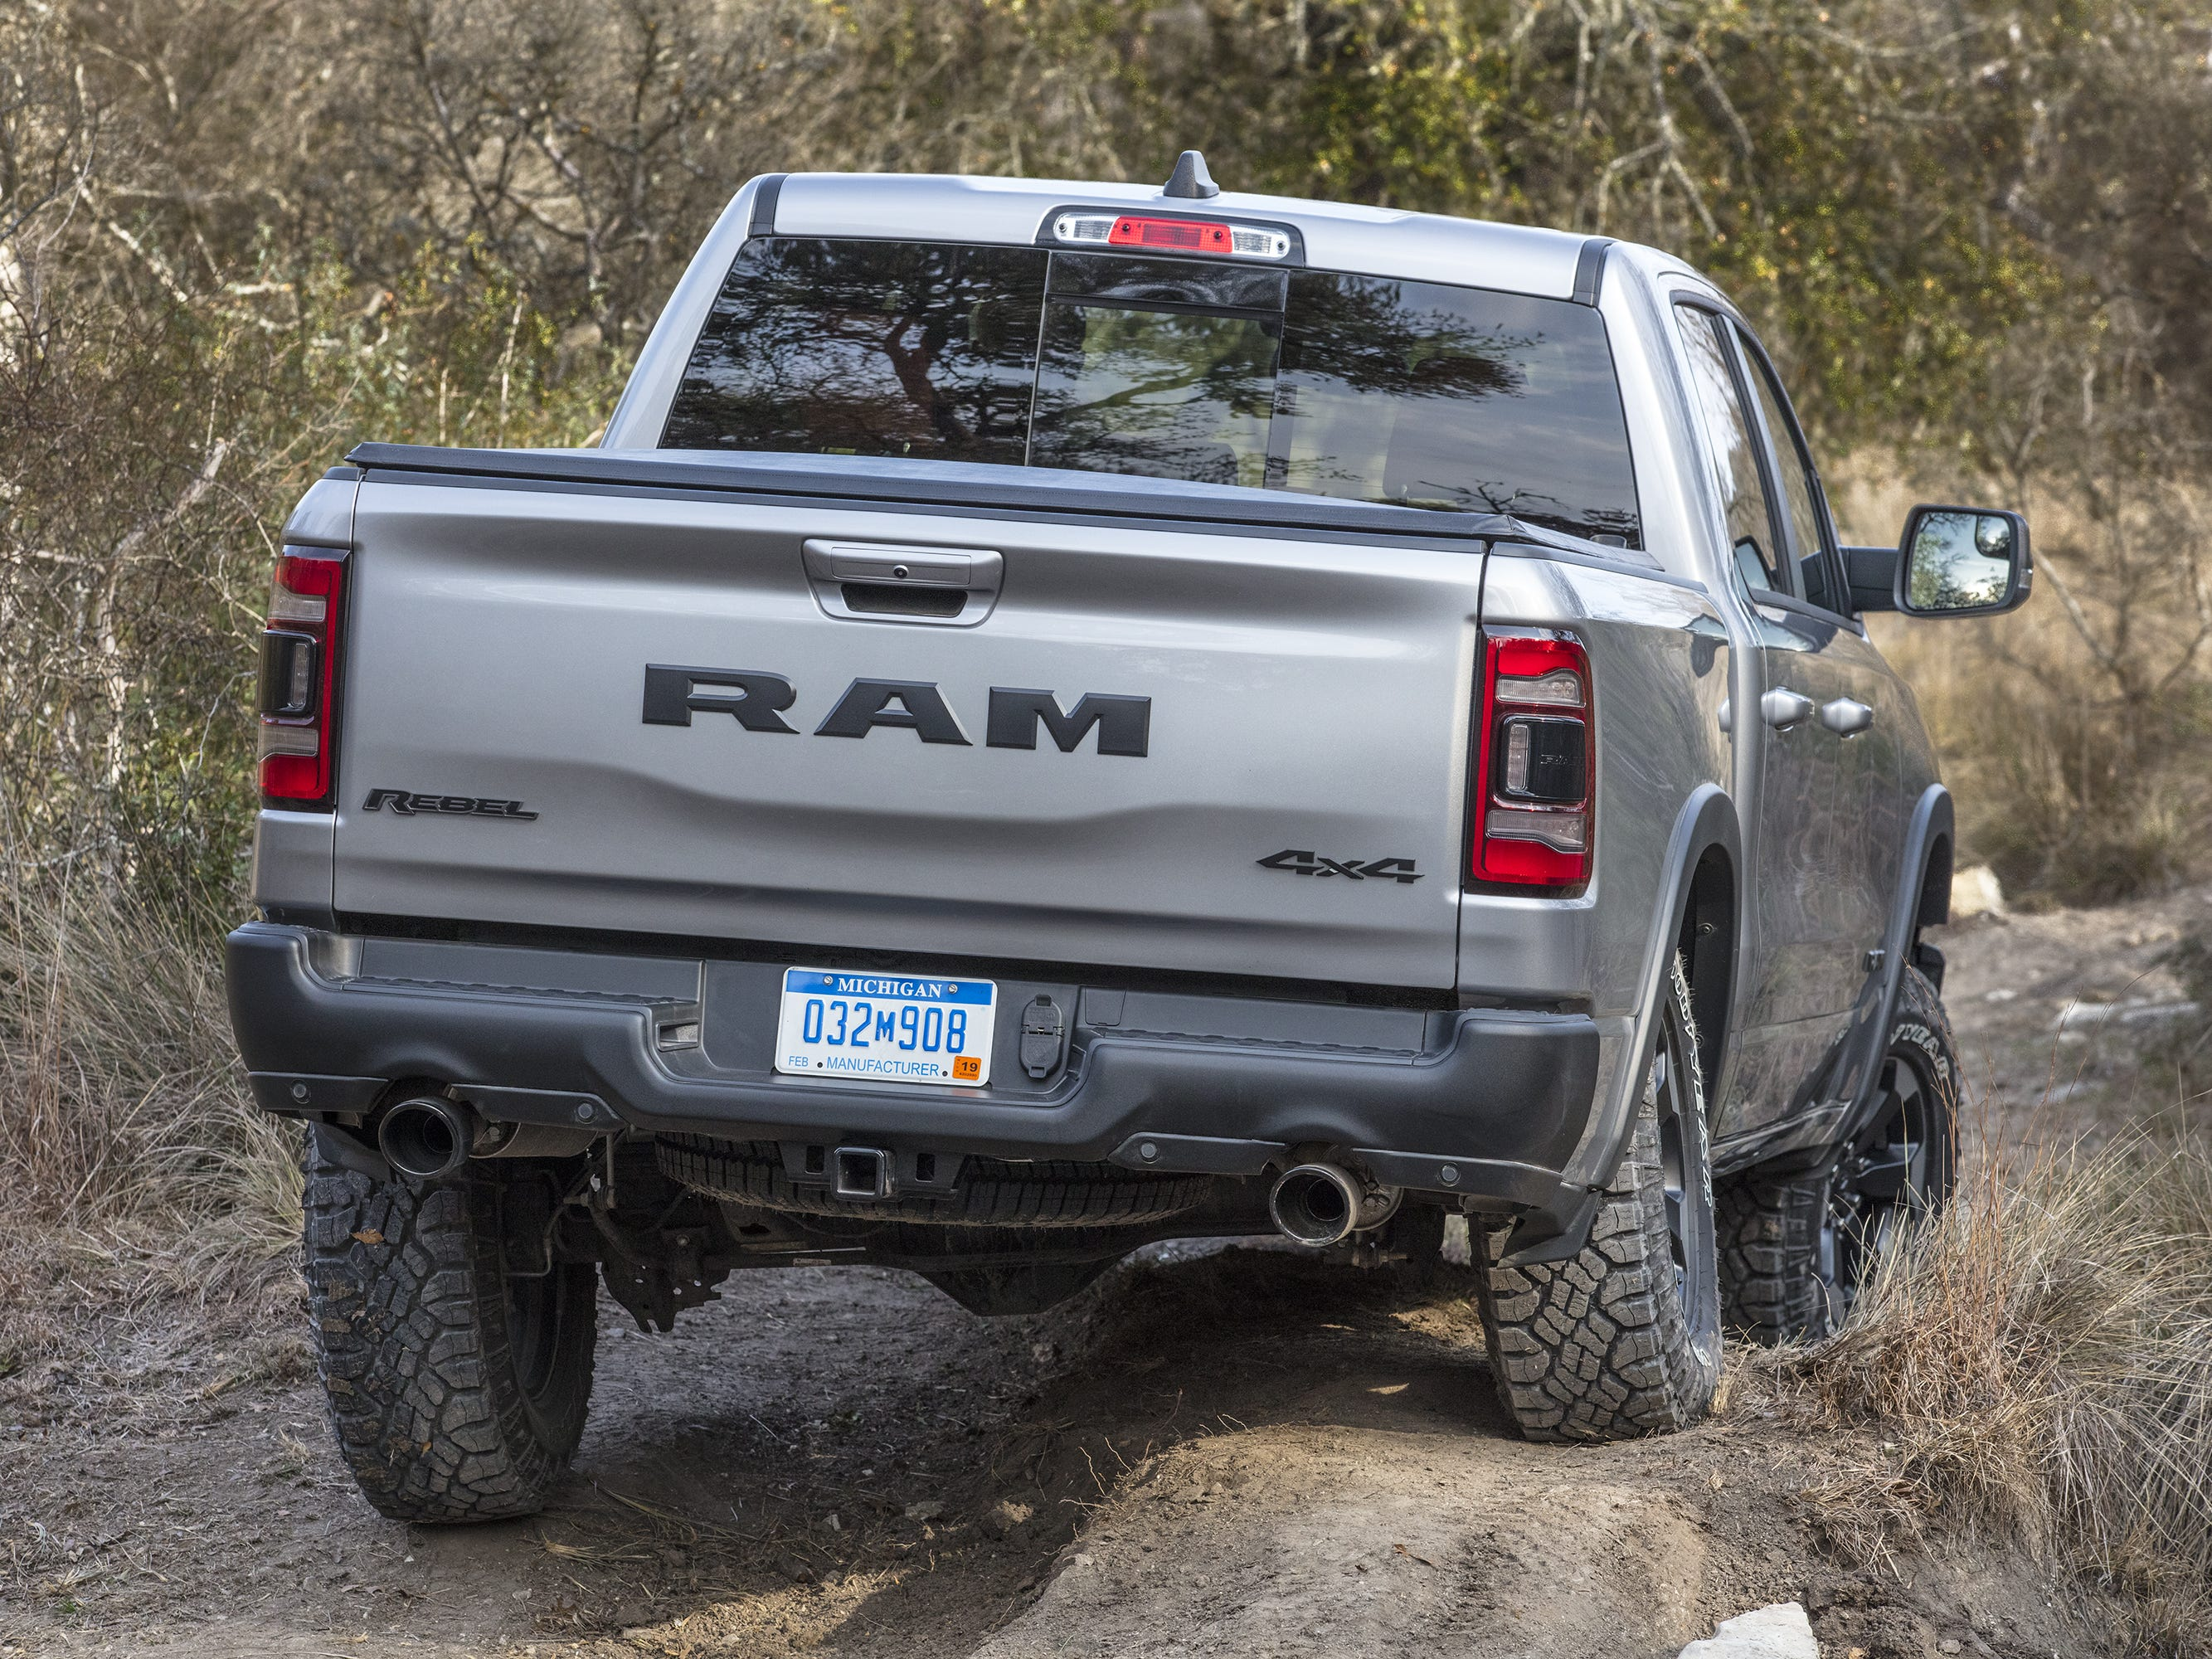 2019 Ram 1500 Rebel frame twist in Austin, Texas.